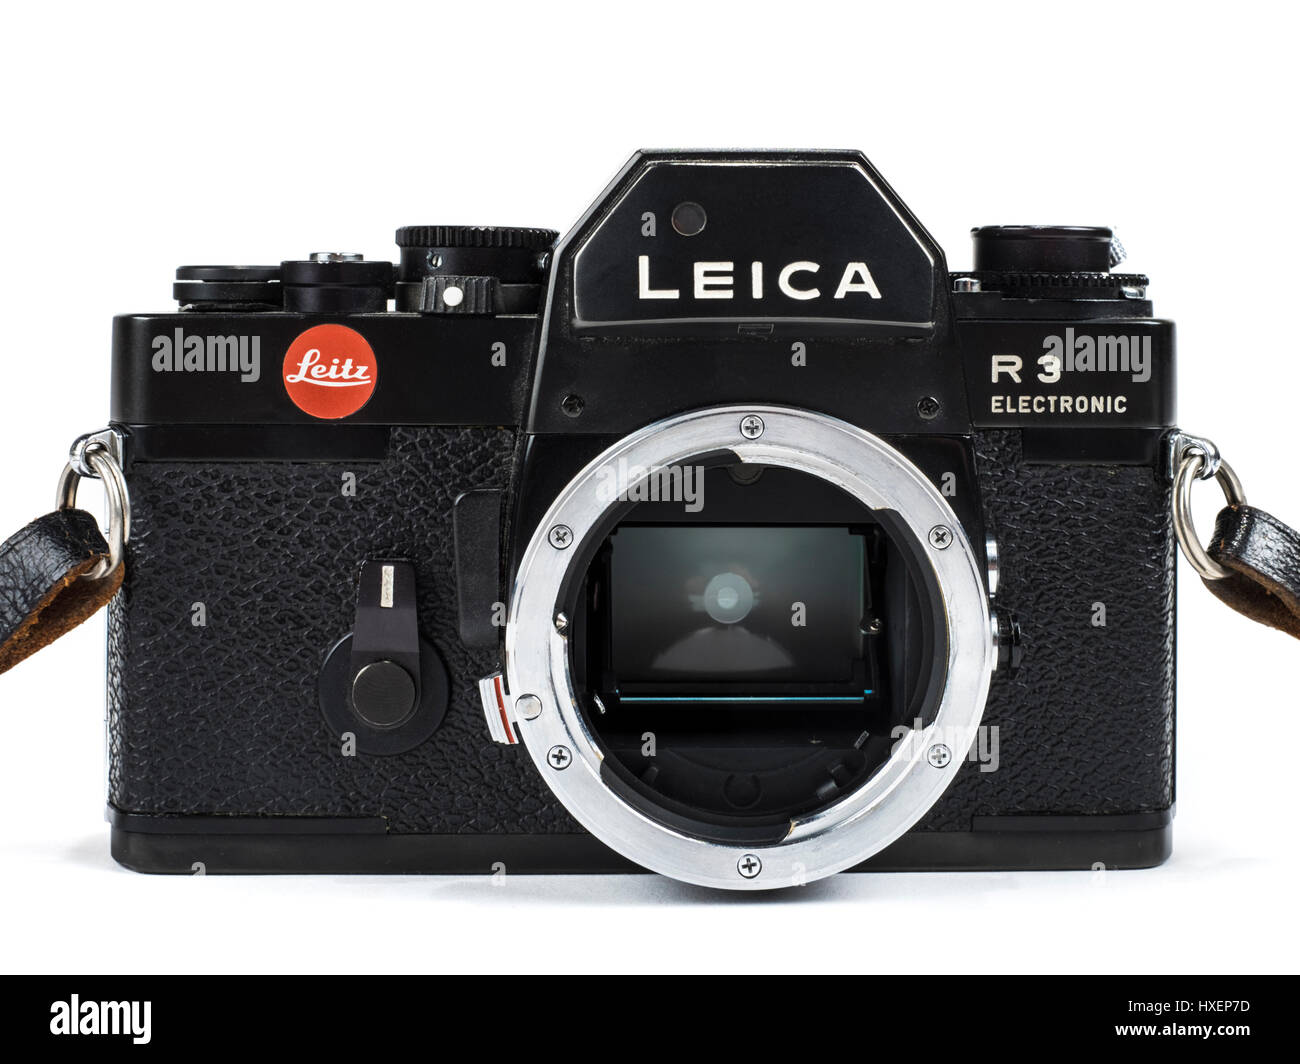 Vintage Leica R3 Electronic 35mm SLR film camera from 1976 with lens removed to show the mirror inside. - Stock Image